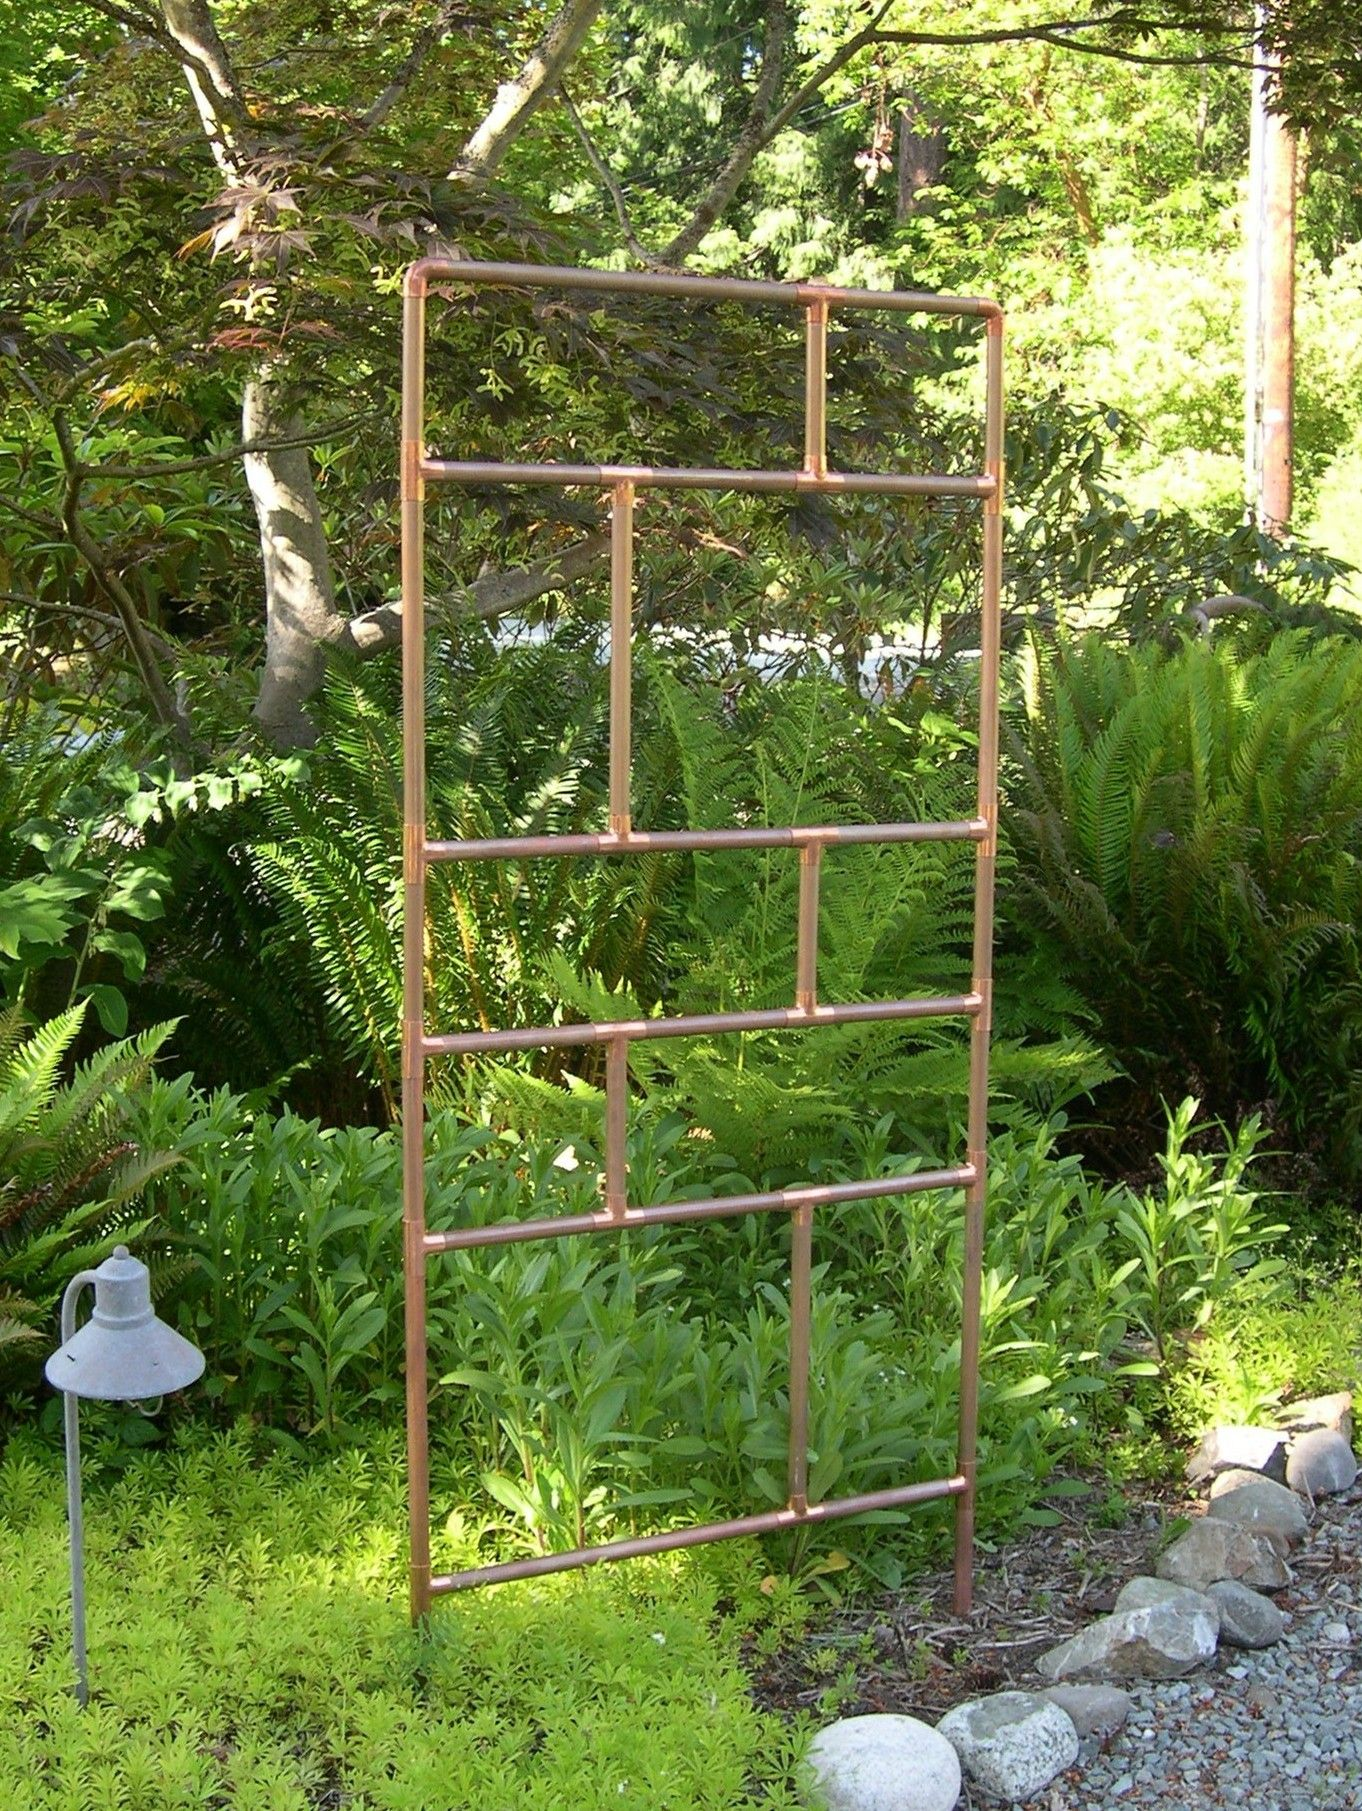 Pinterest Trellis Ideas Part - 41: Garden Trellis Ideas This One Is 5 Feet Tall By 3 Feet Wide And Is Made